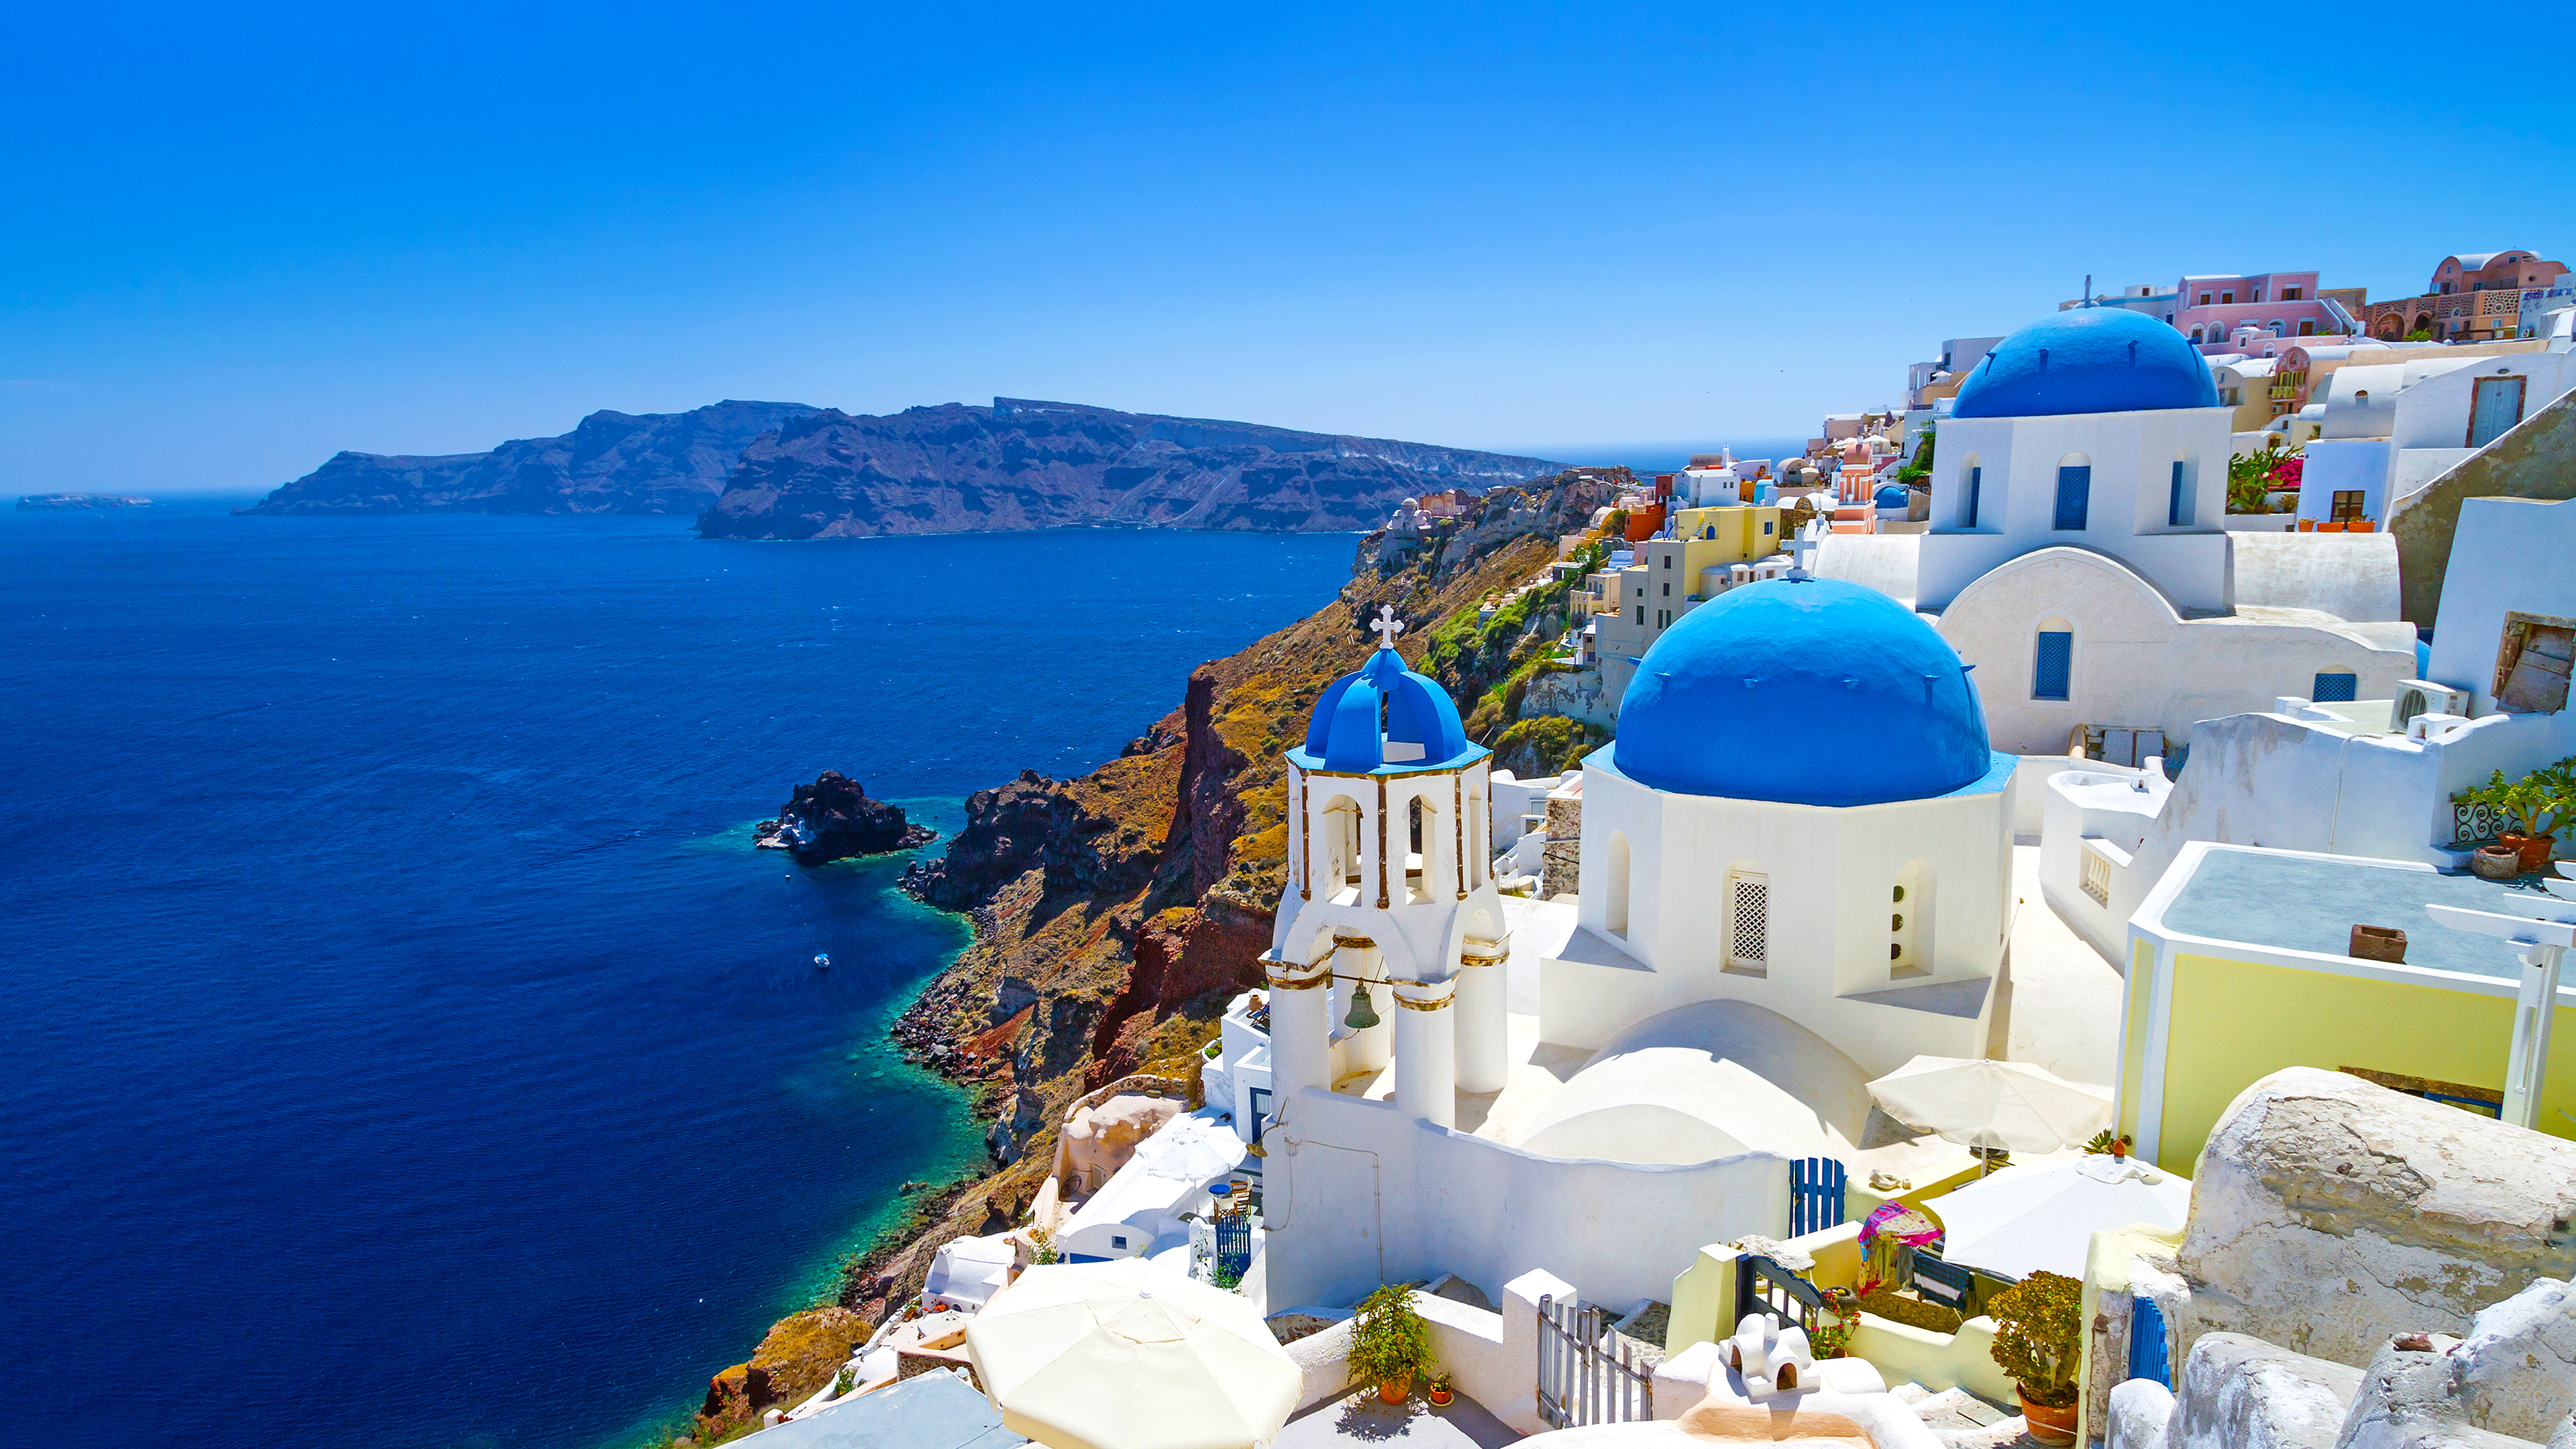 35] Santorini Greece Wallpapers on WallpaperSafari 3840x2160